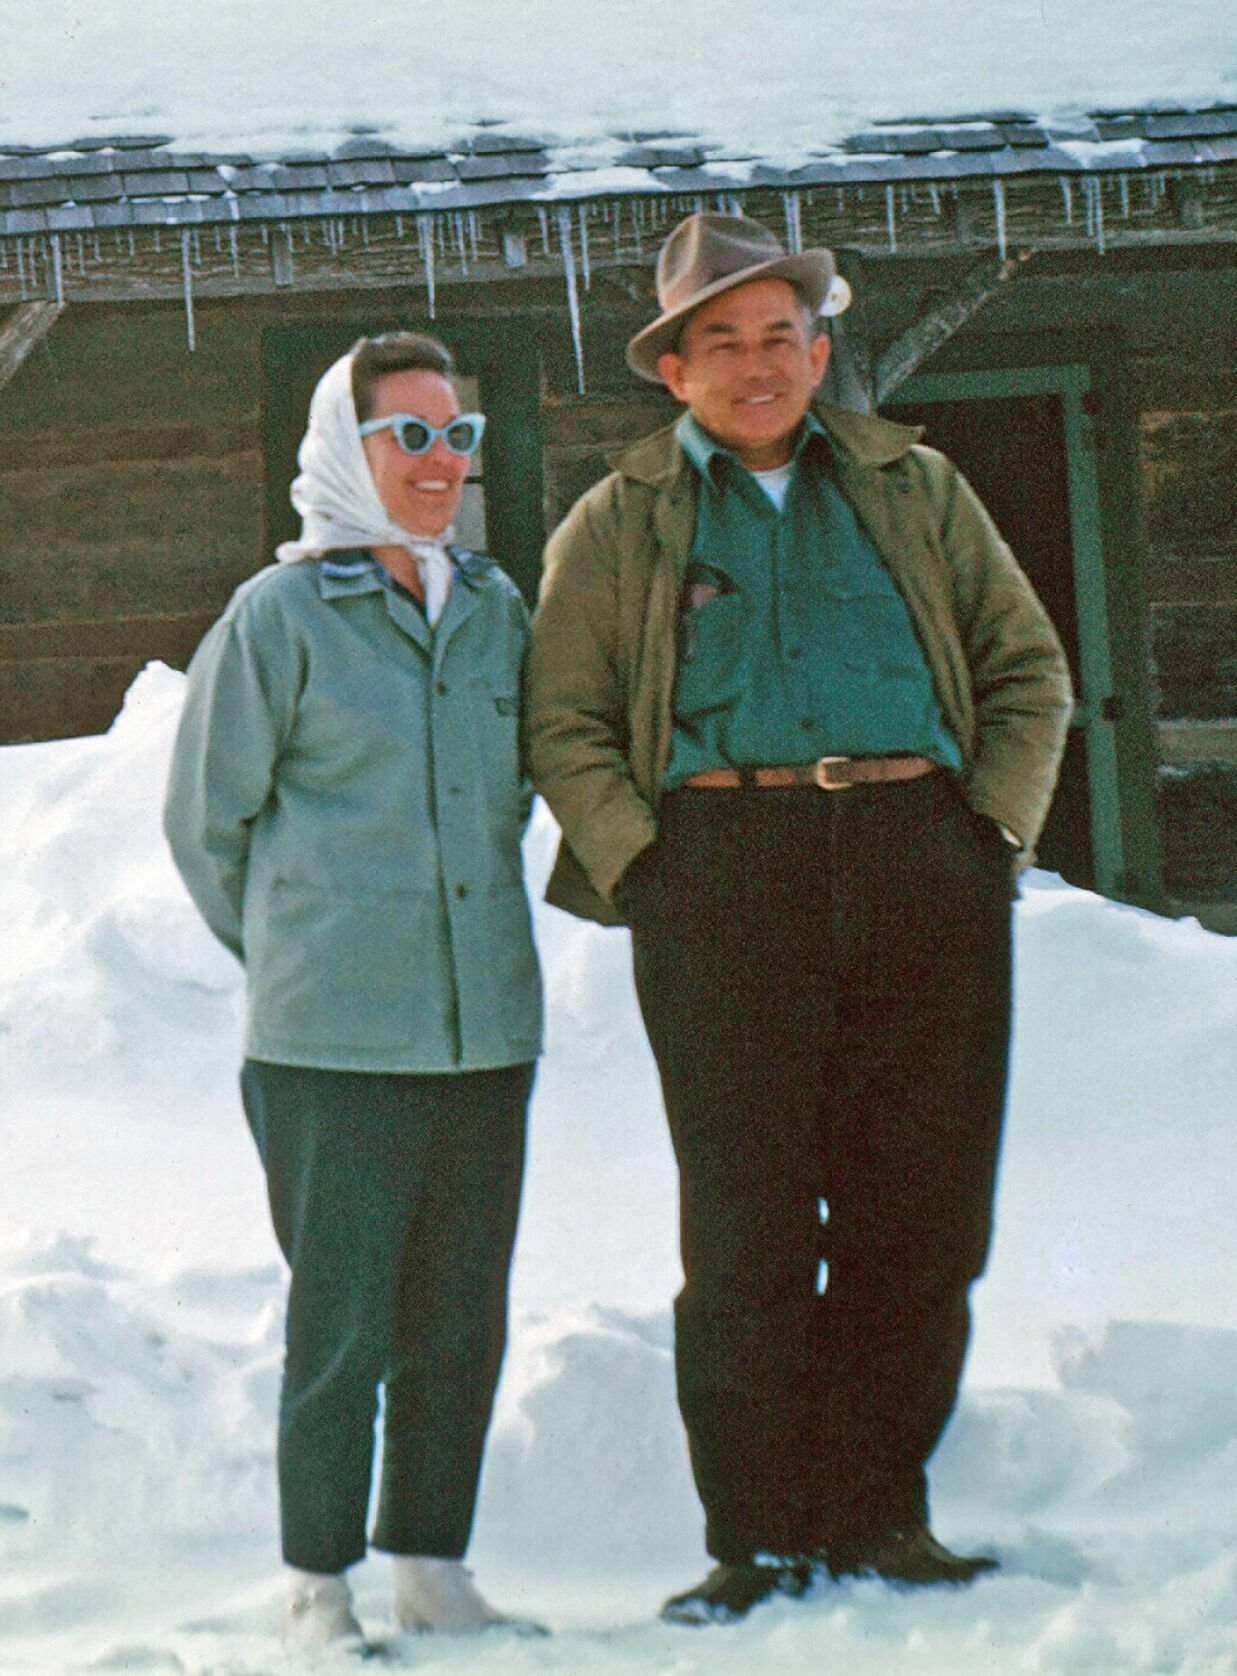 Clyde and Paul Stiles-Lodge Caretakers(cropped).tif